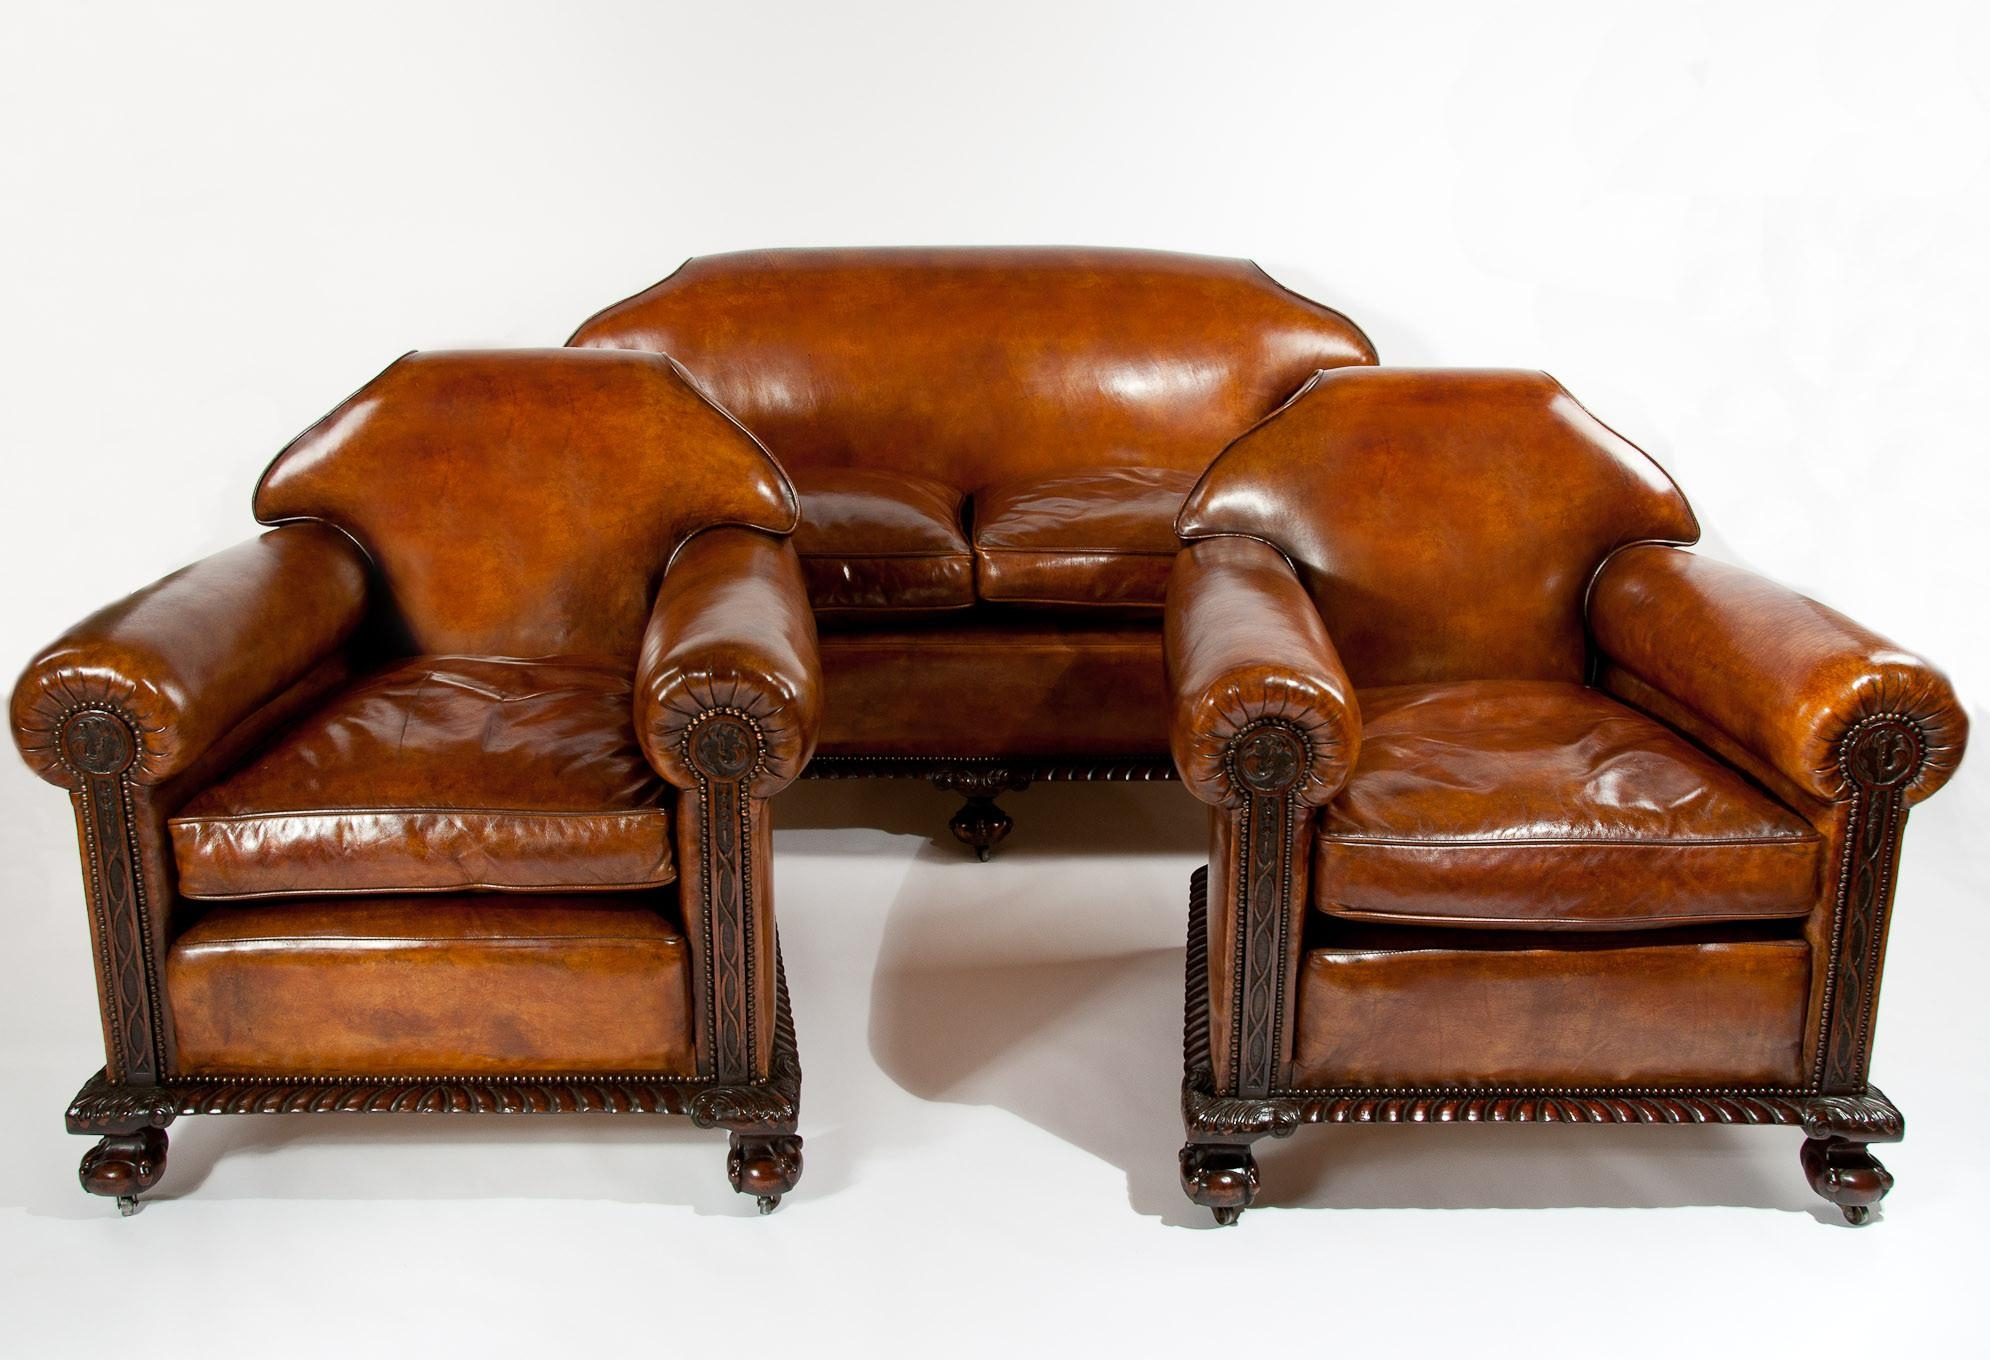 Magnificent Victorian Leather Sofa And Chairs 3 Piece Suite (1880 Within Victorian Leather Sofas (Image 10 of 20)